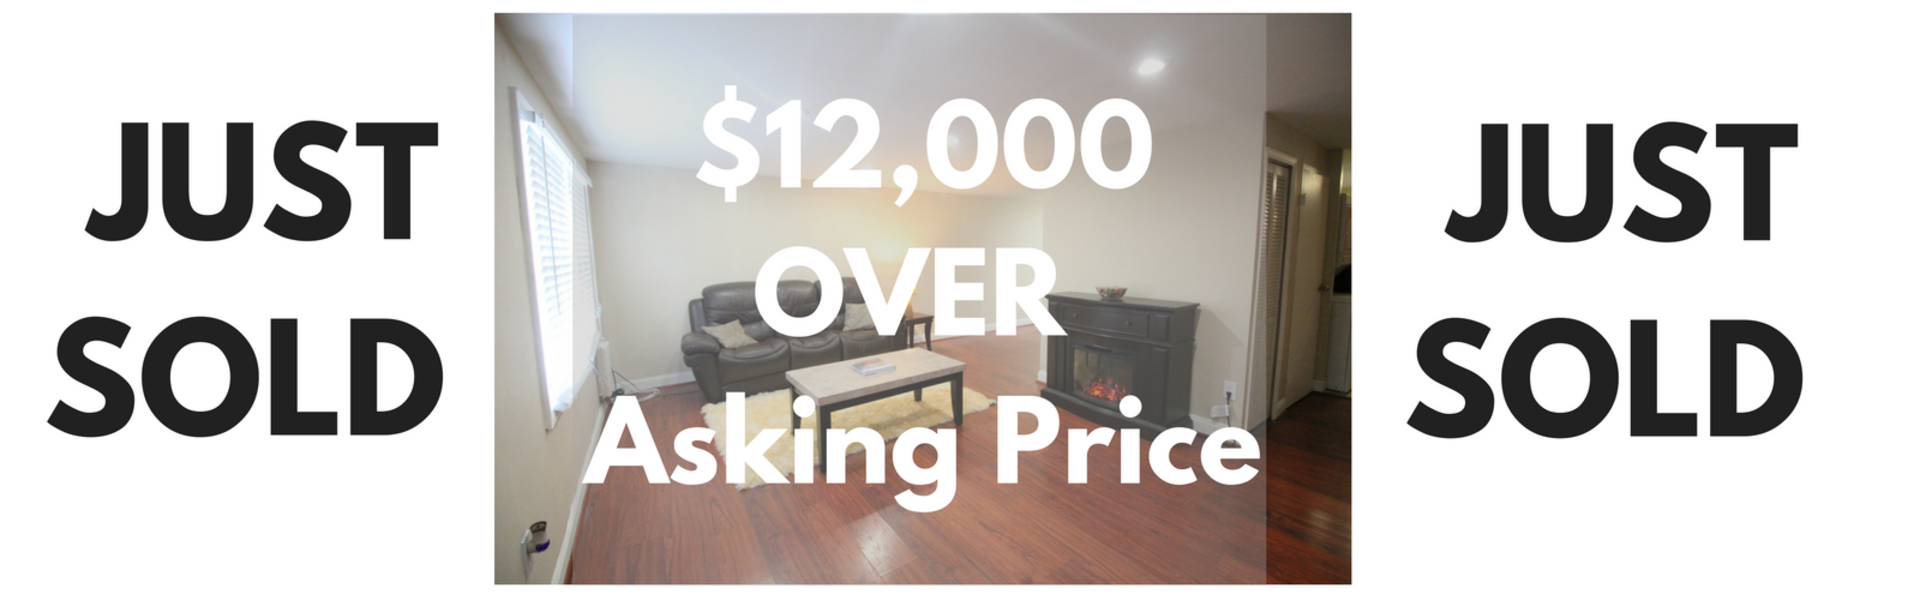 VIDEO: JUST SOLD FOR $12,000 OVER ASKING PRICE!